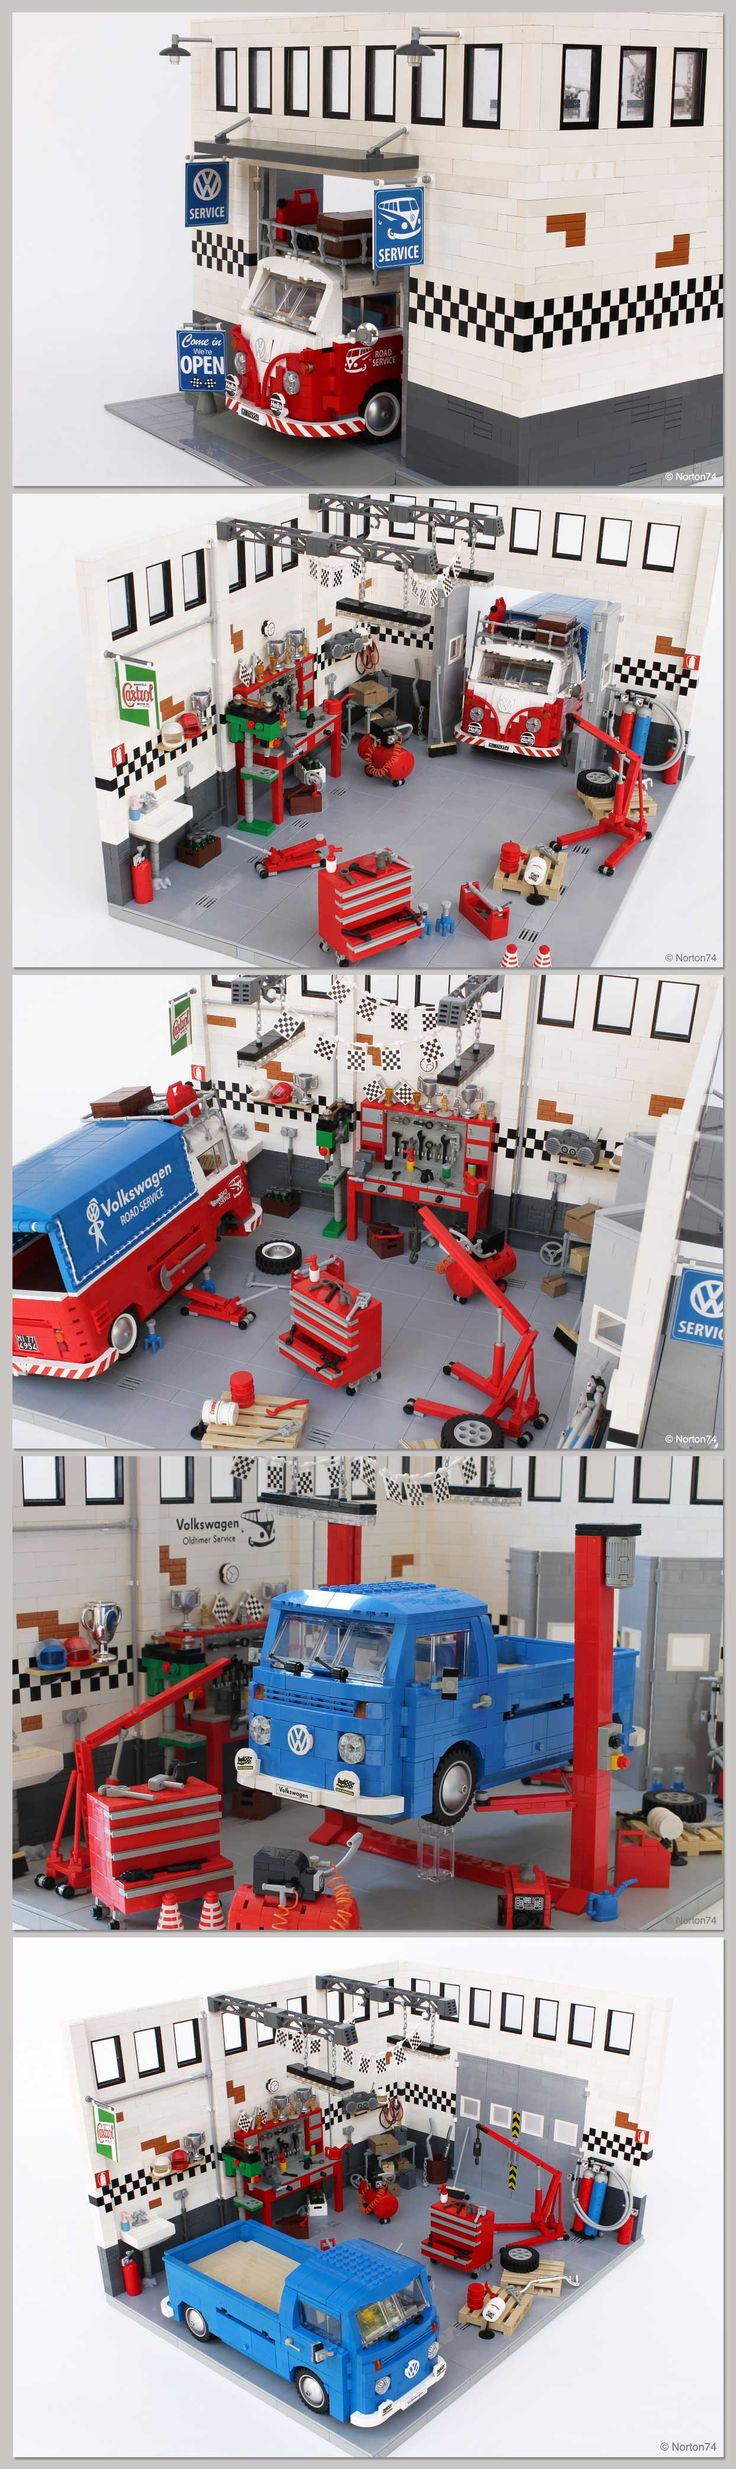 custom lego garage, this guy is my hero.... VW Bus love ♠ re-pinned by http://www.wfpblogs.com/category/toms-blog/